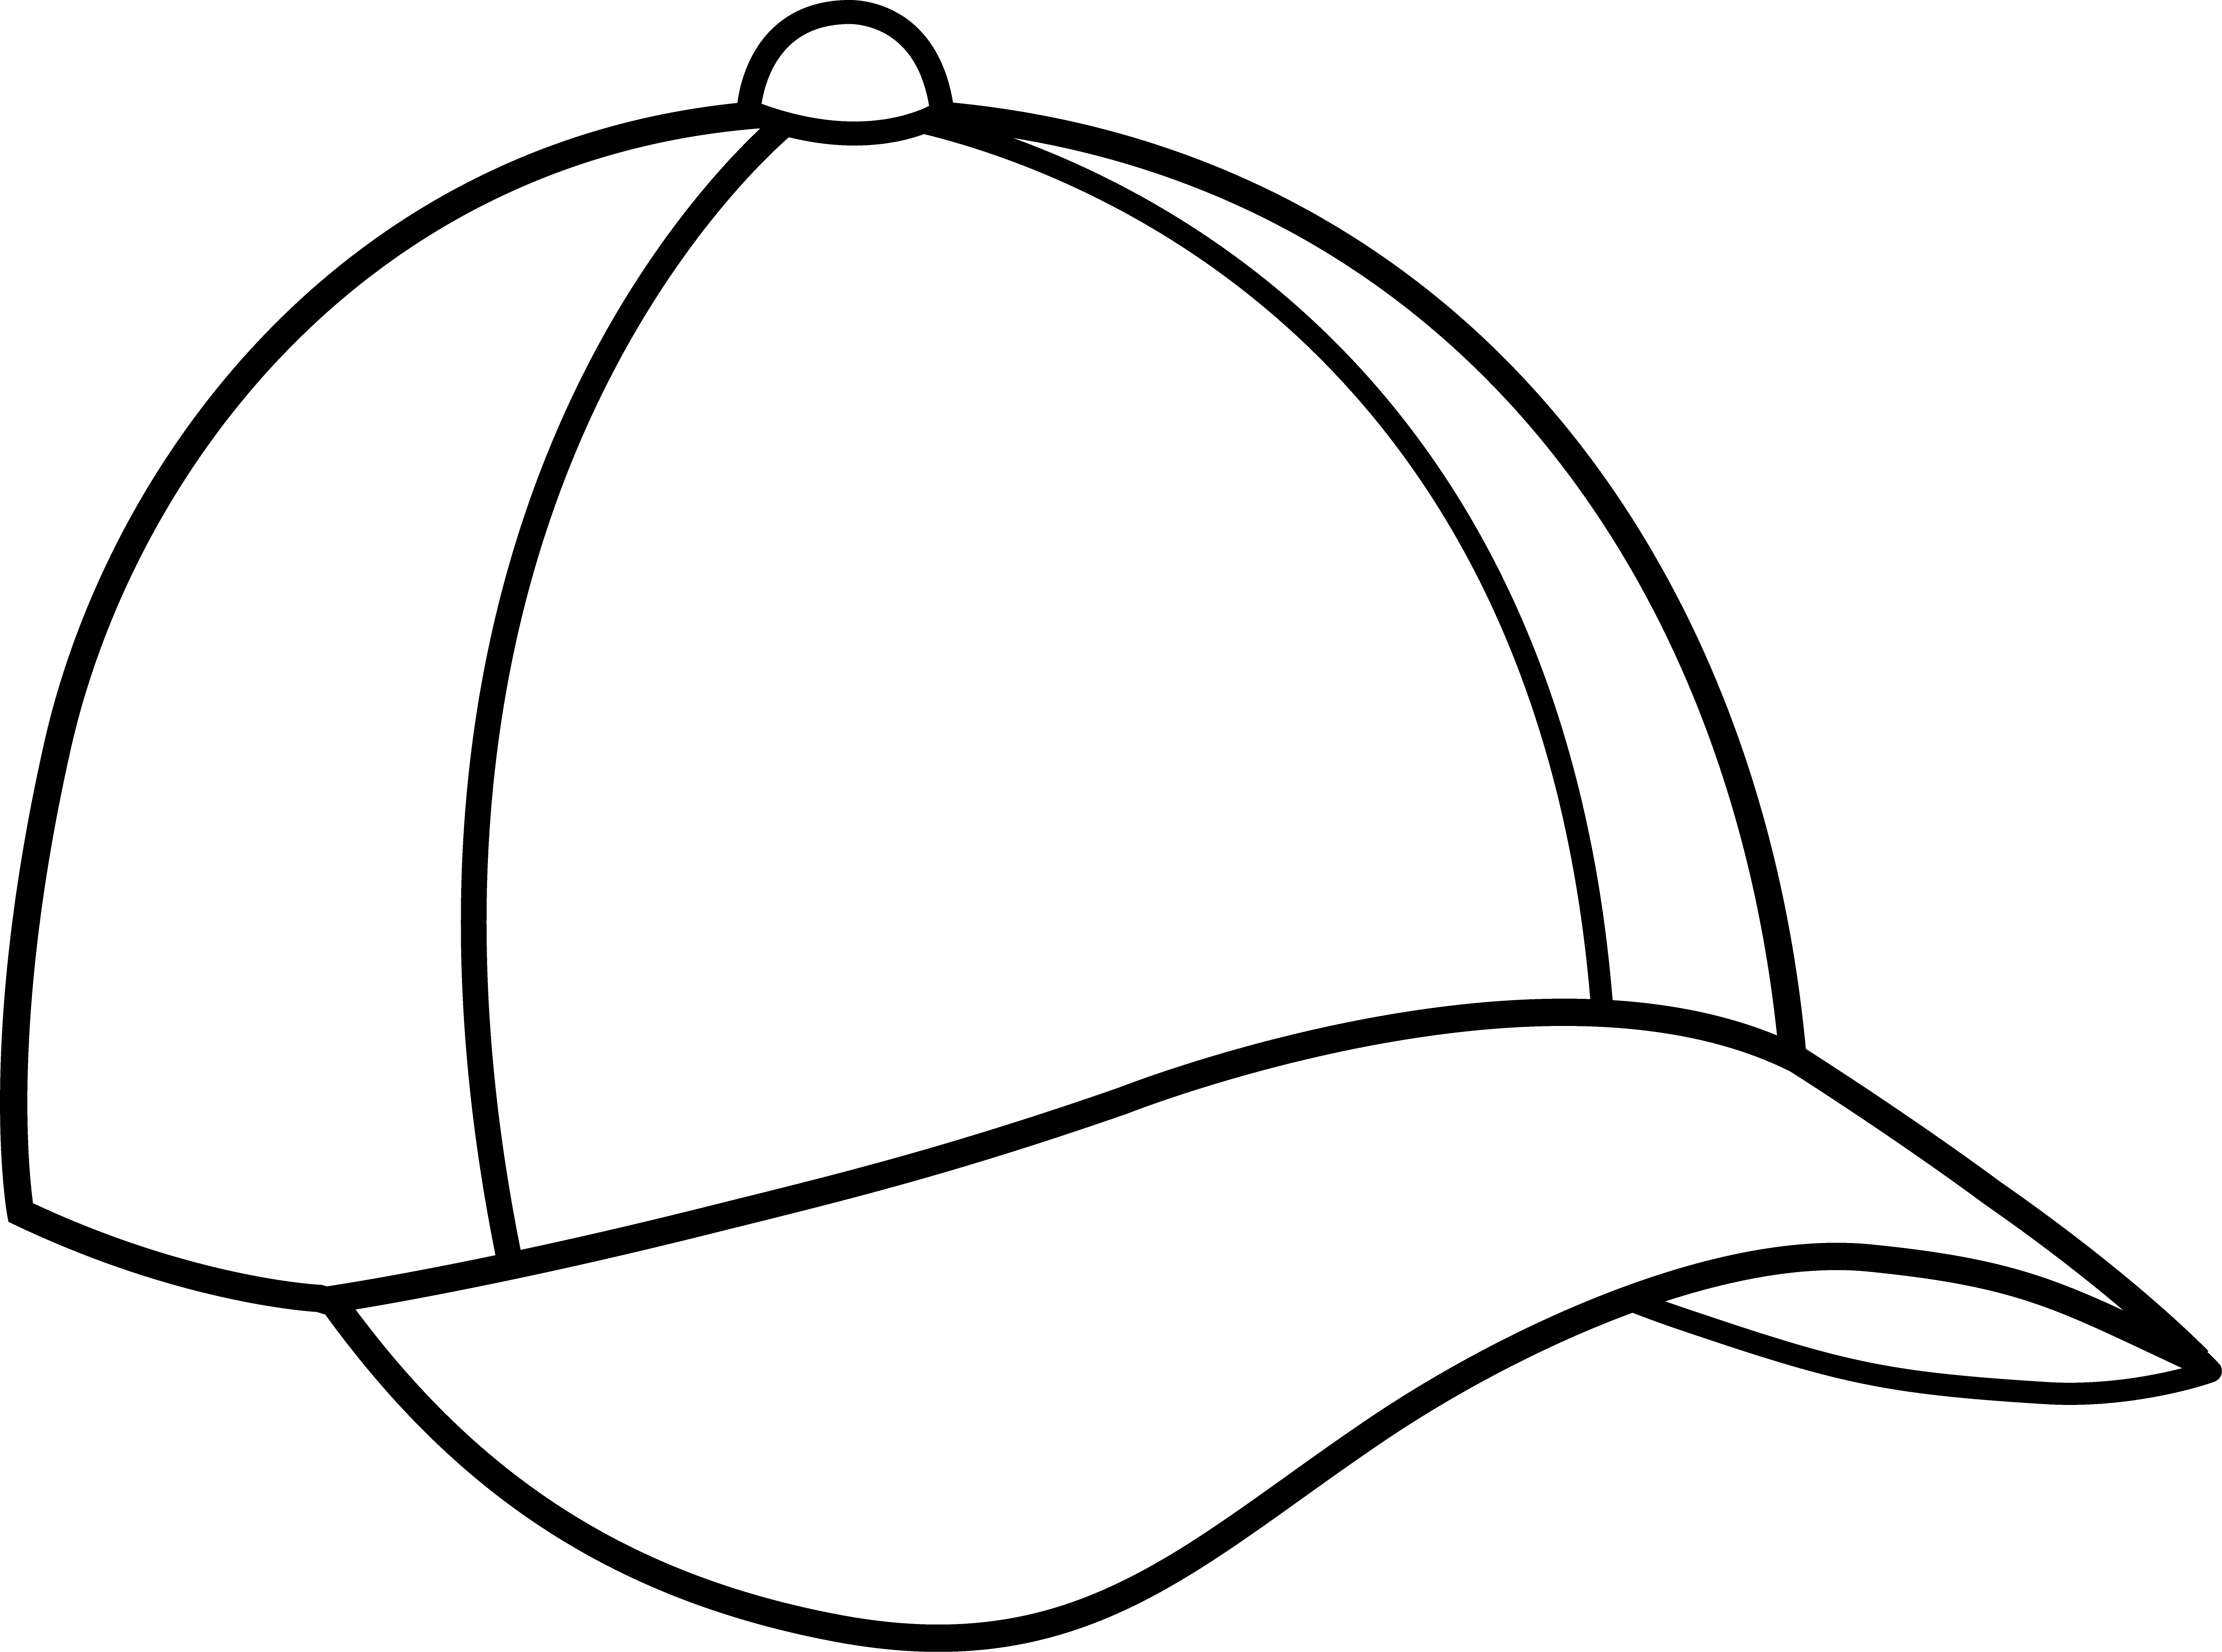 Free Black And White Baby Hat, Download Free Clip Art, Free.